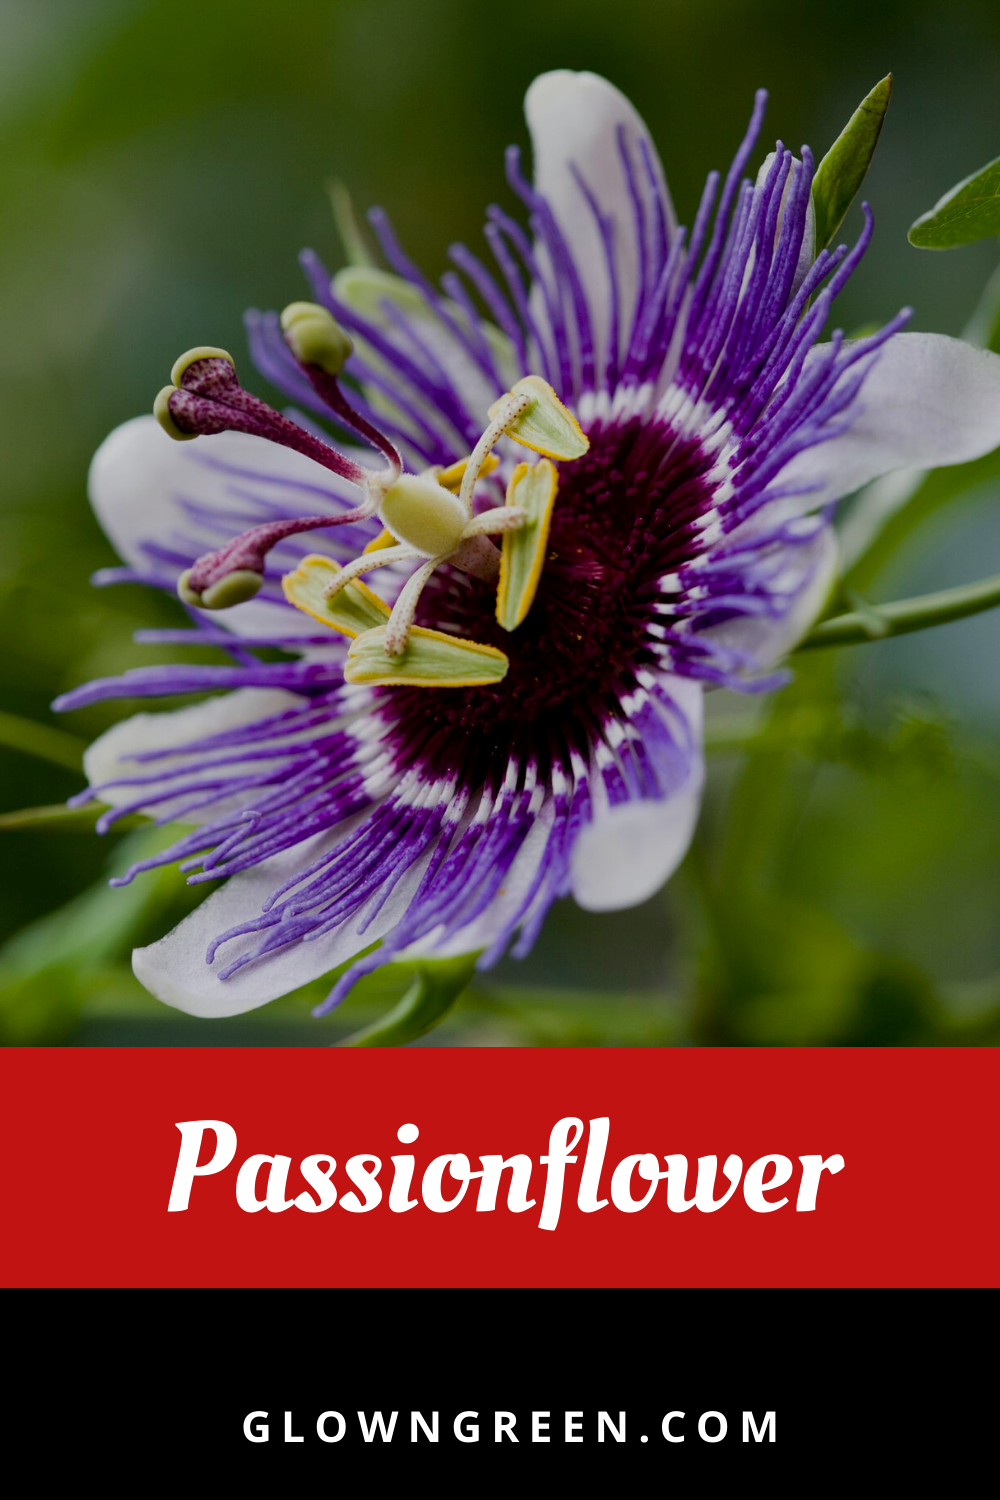 8 Health Benefits Of Passion Flower How To Use It Passion Flower Passion Flower Benefits Passion Flower Tea